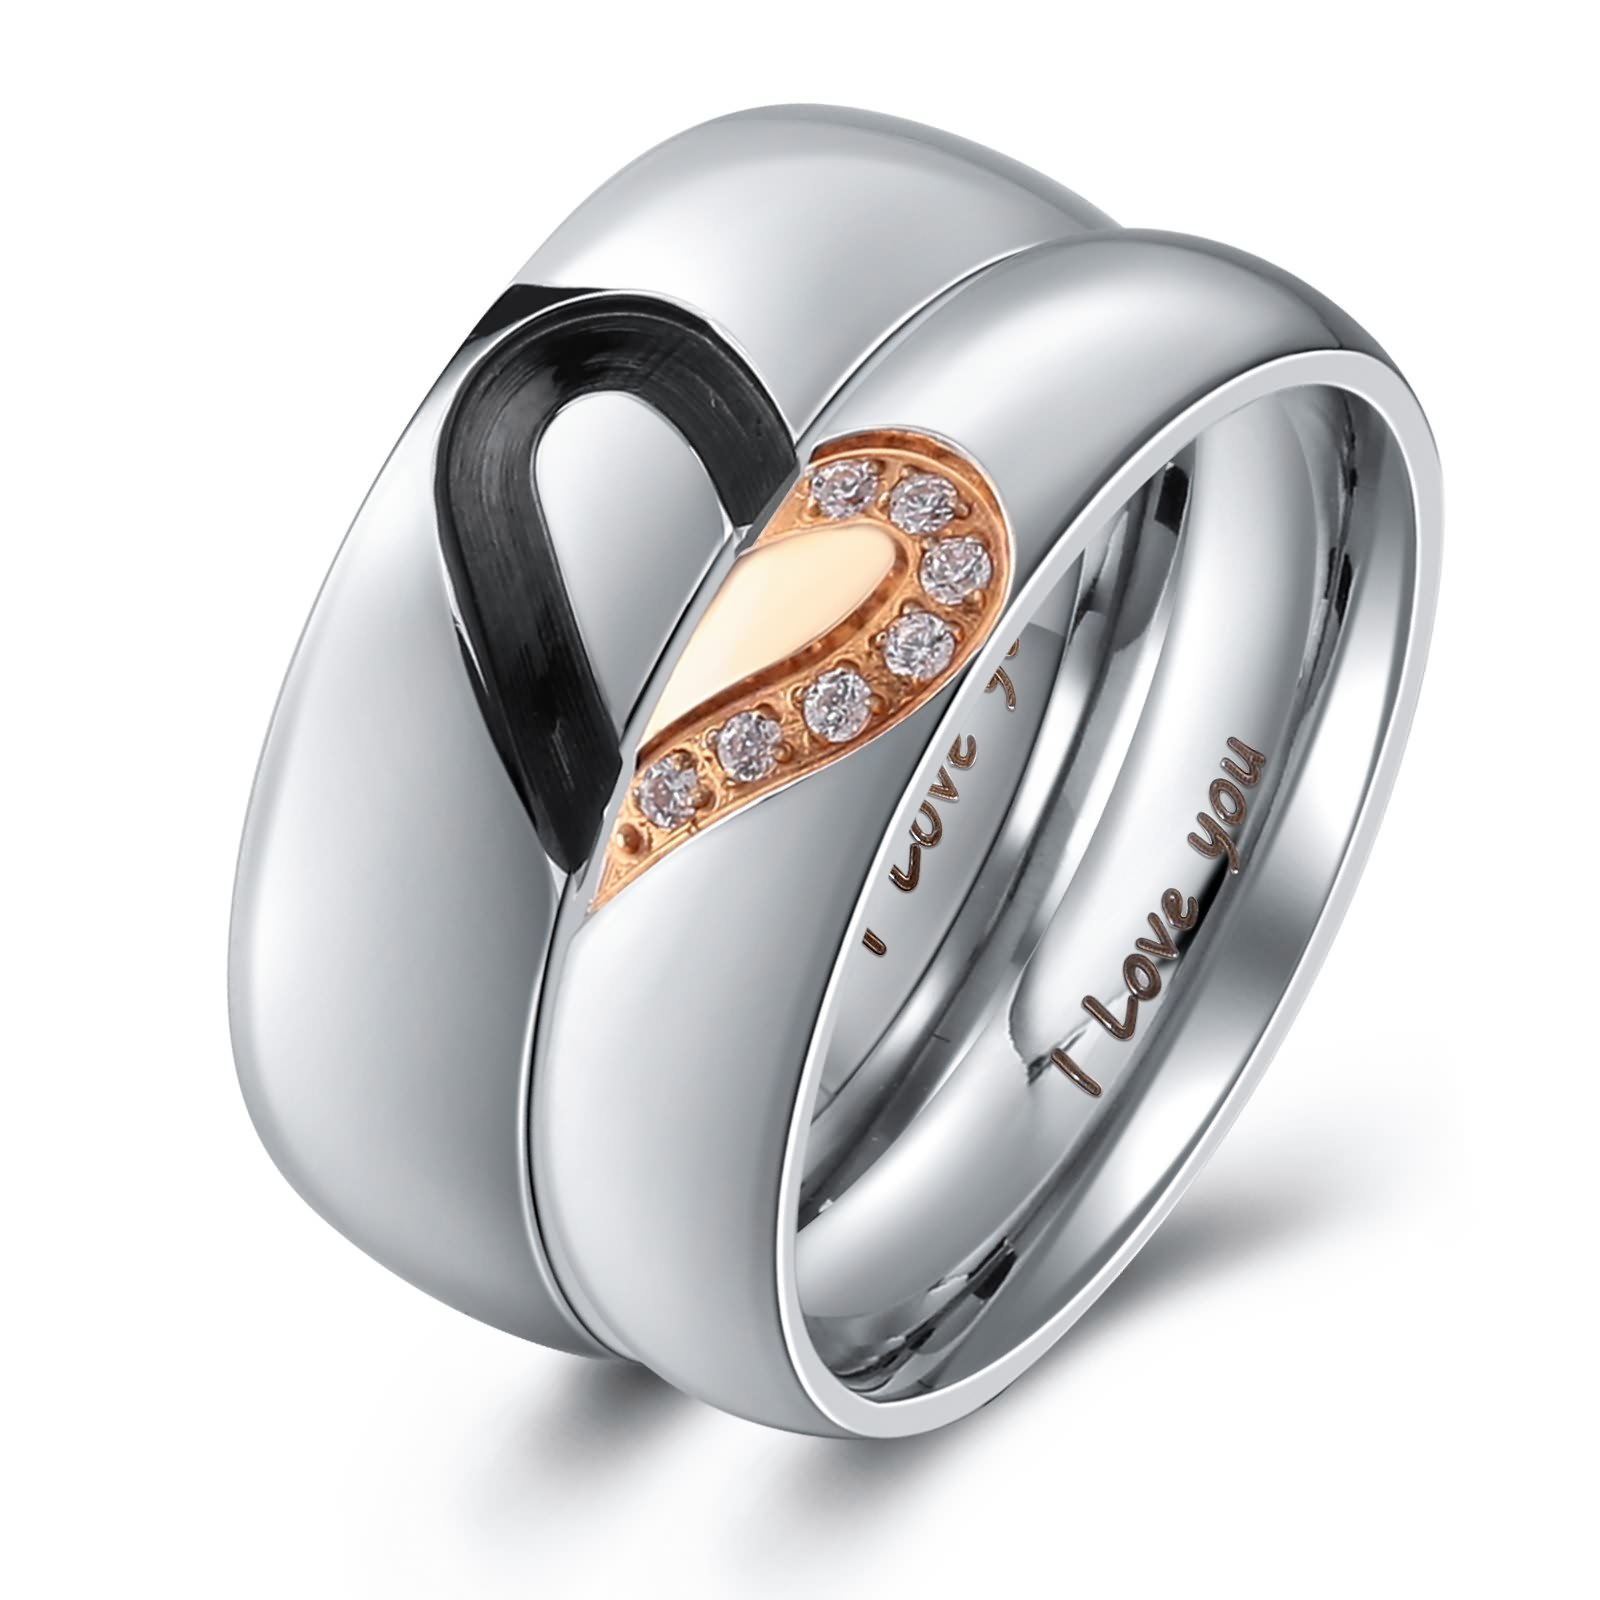 Aienid Rings Men and Women Couple Rings Heart I Love You Stainless Steel Wedding Bands for Womens Size 7 by Aienid (Image #1)